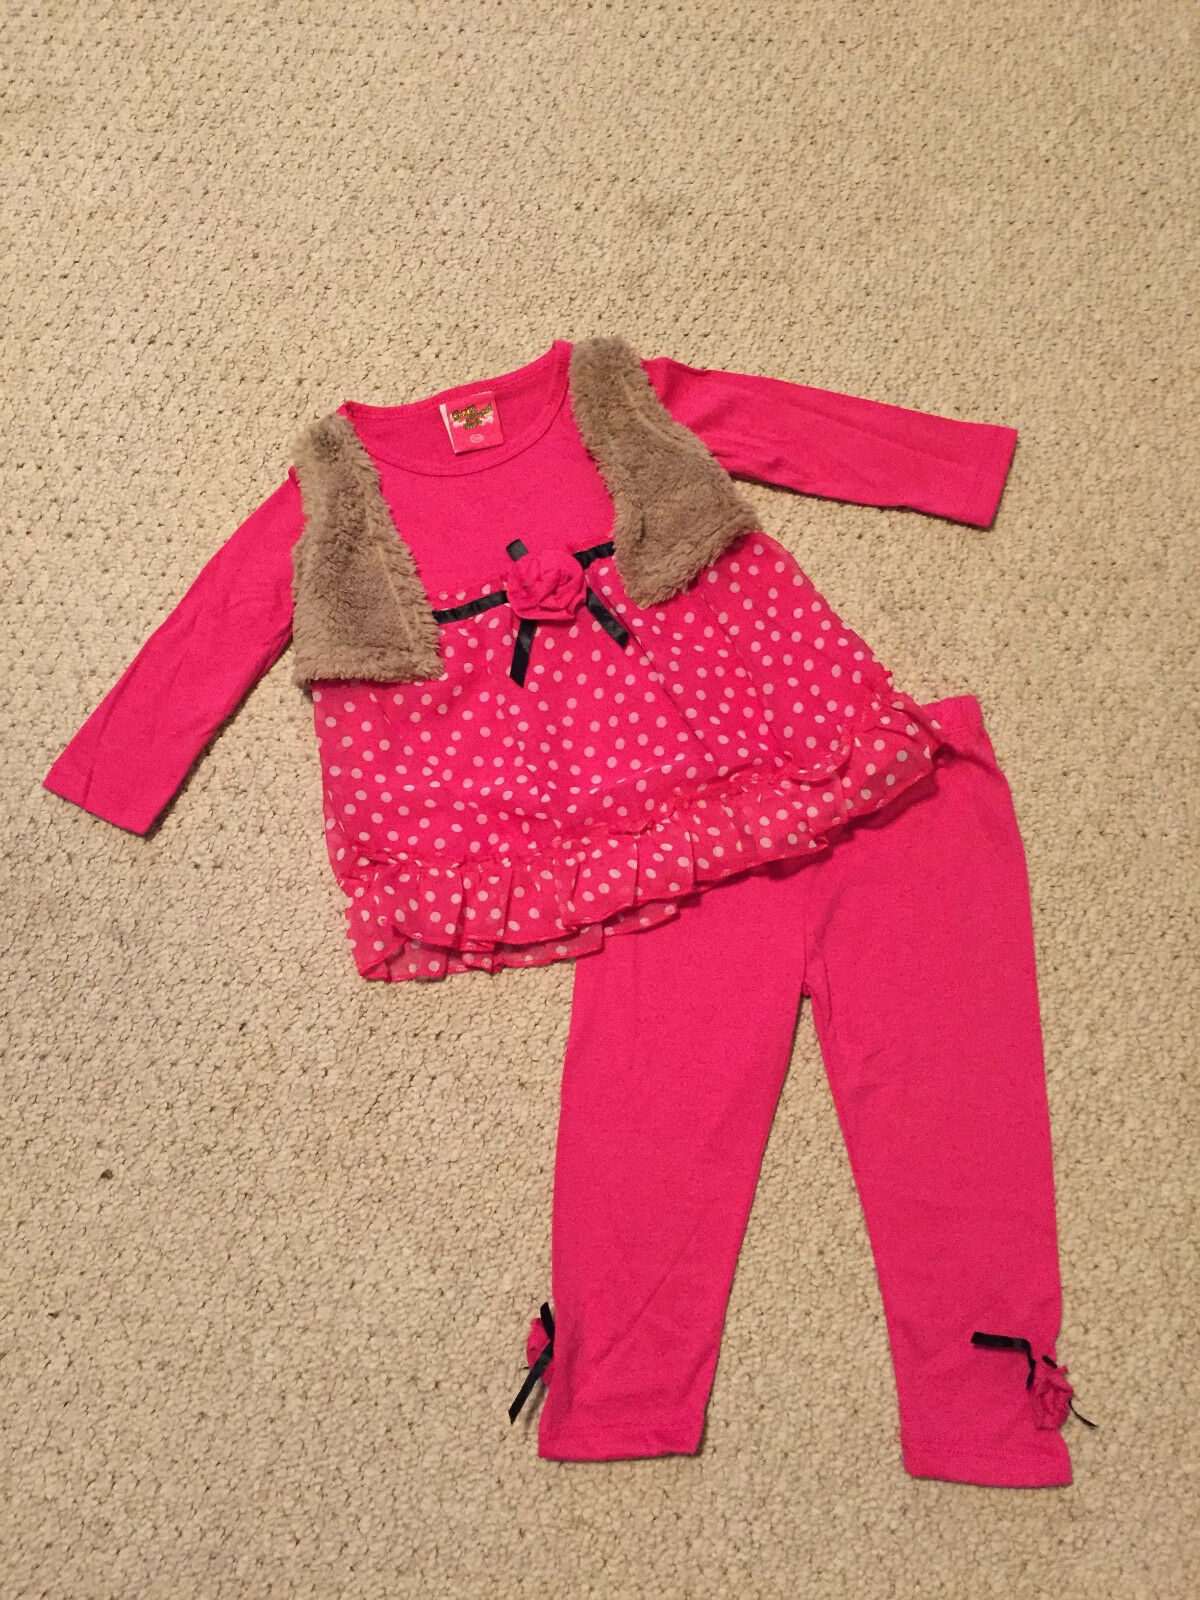 """NEW """"PINK Rose Dot"""" Vest & Pants Girls 12m Fall Winter Clothes Baby Boutique"""